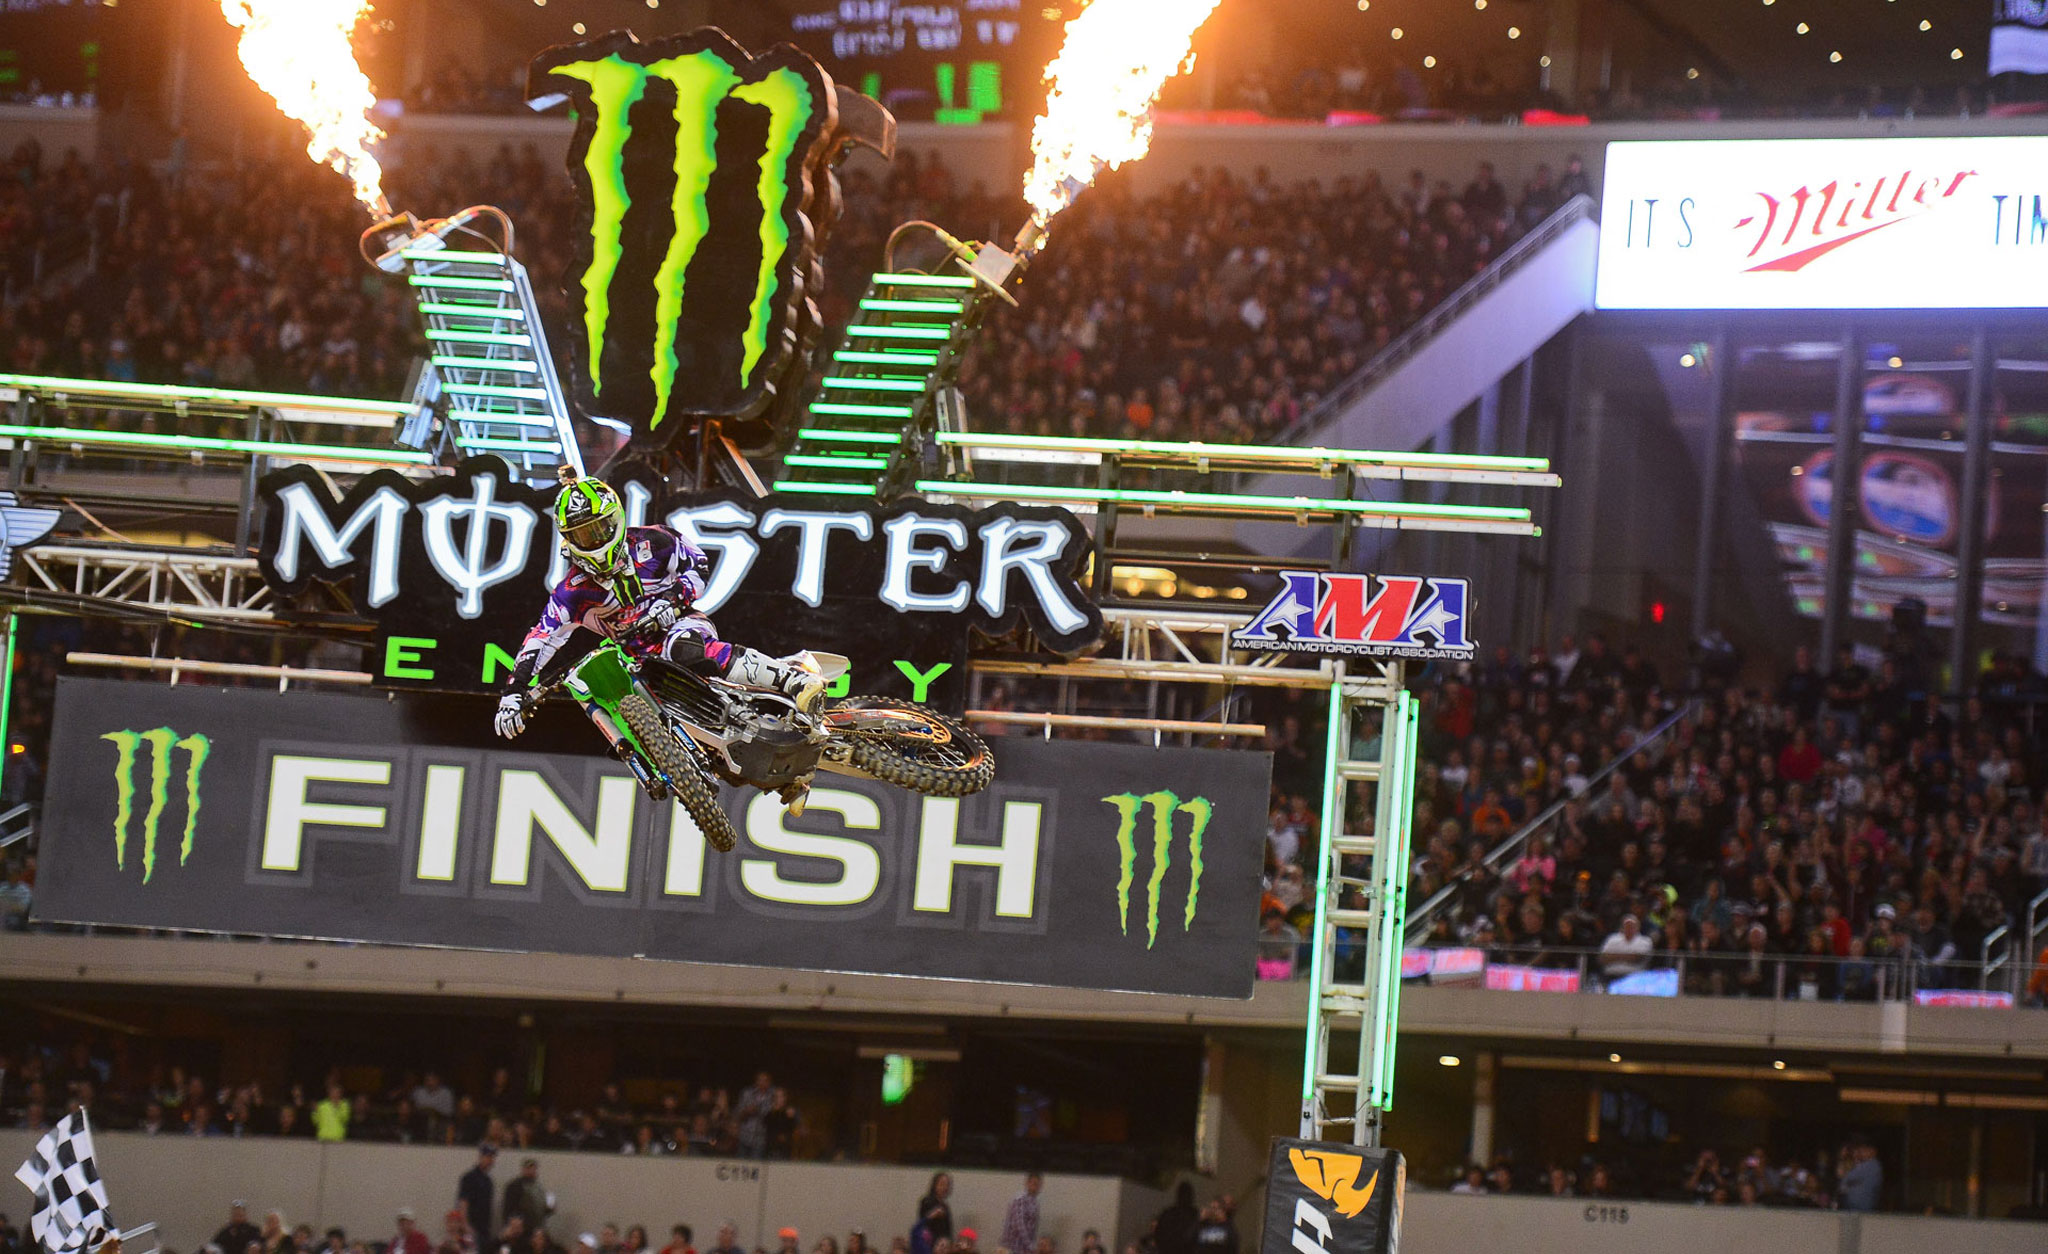 Ryan Villopoto won his third Supercross victory of the season in Arlington.